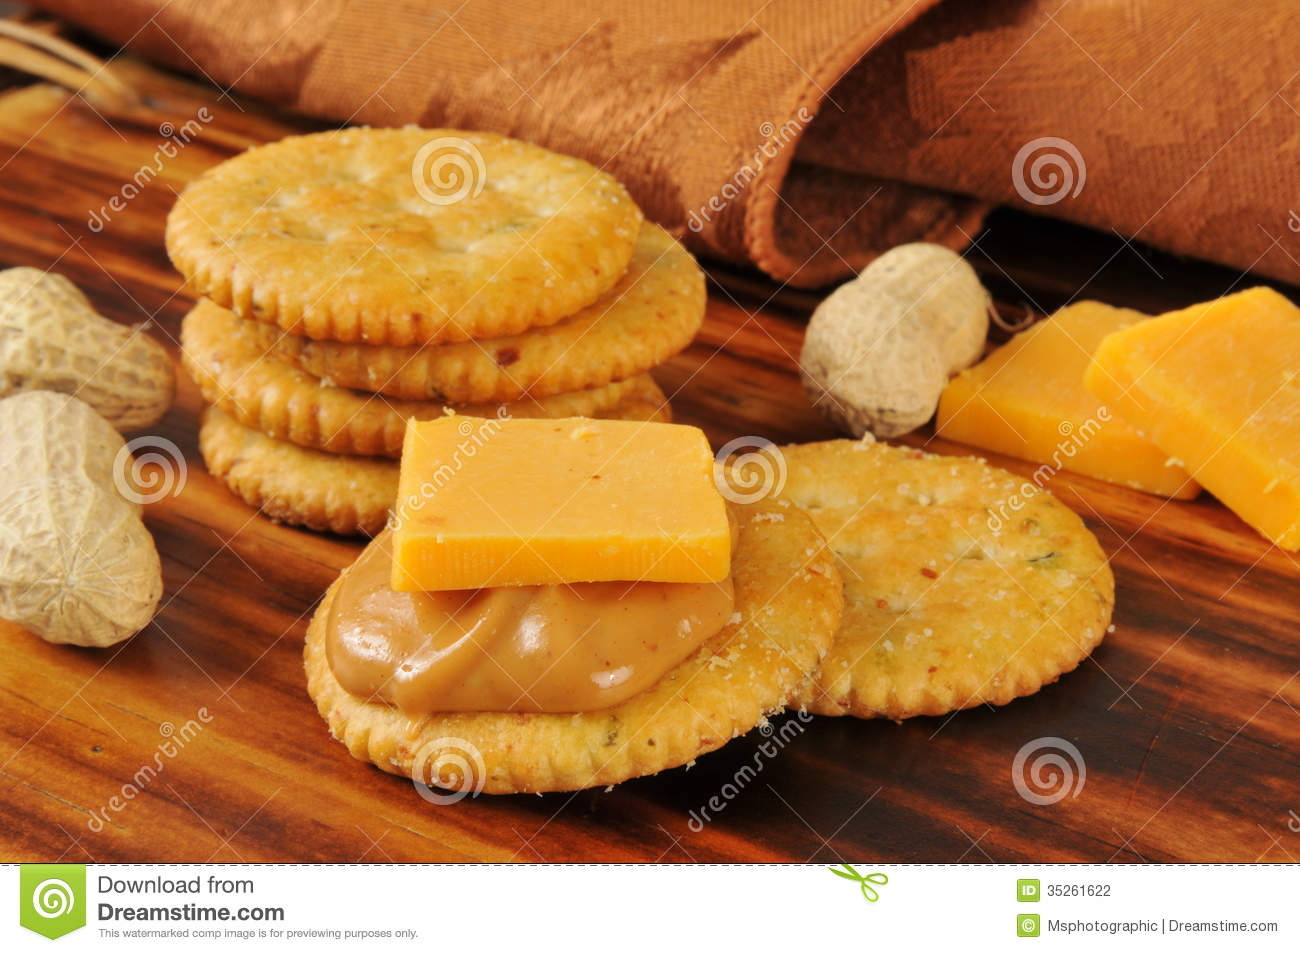 peanut butter and cheese